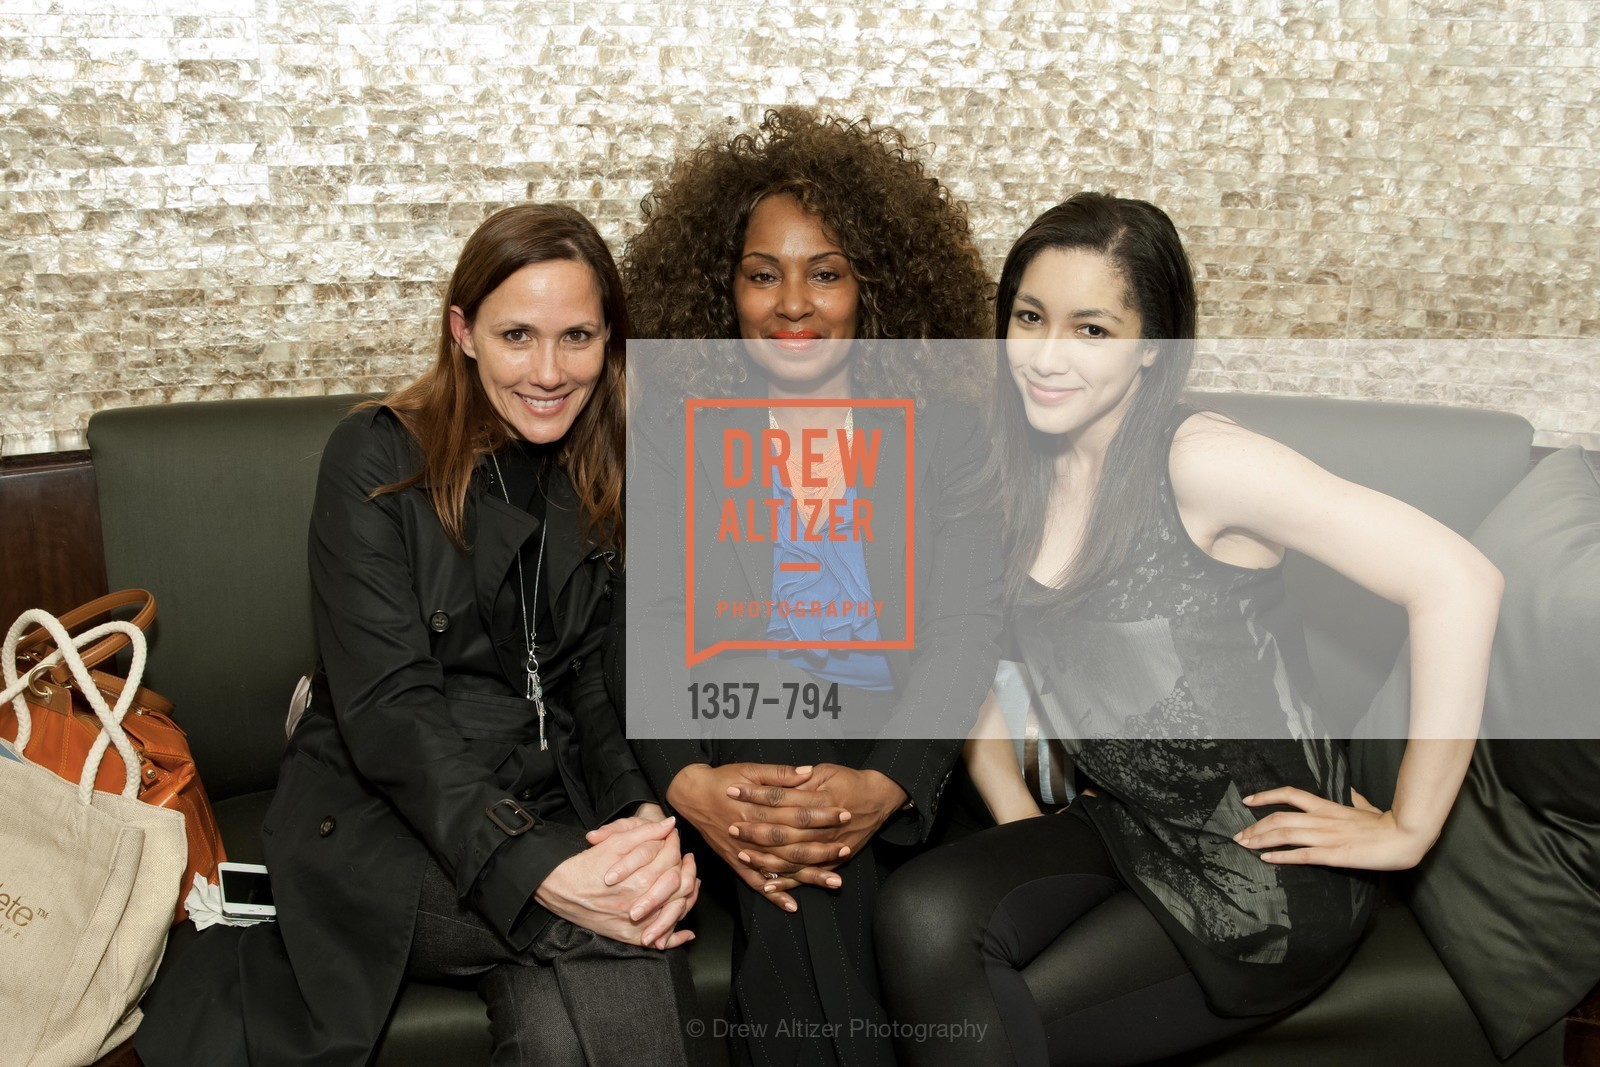 Laurie Brown, Chaundra Woods, Jasmine Frazier, EPI CENTER MedSpa Anniversary and Launch of REPLETE - Evening Celebration, US, April 21st, 2015,Drew Altizer, Drew Altizer Photography, full-service agency, private events, San Francisco photographer, photographer california